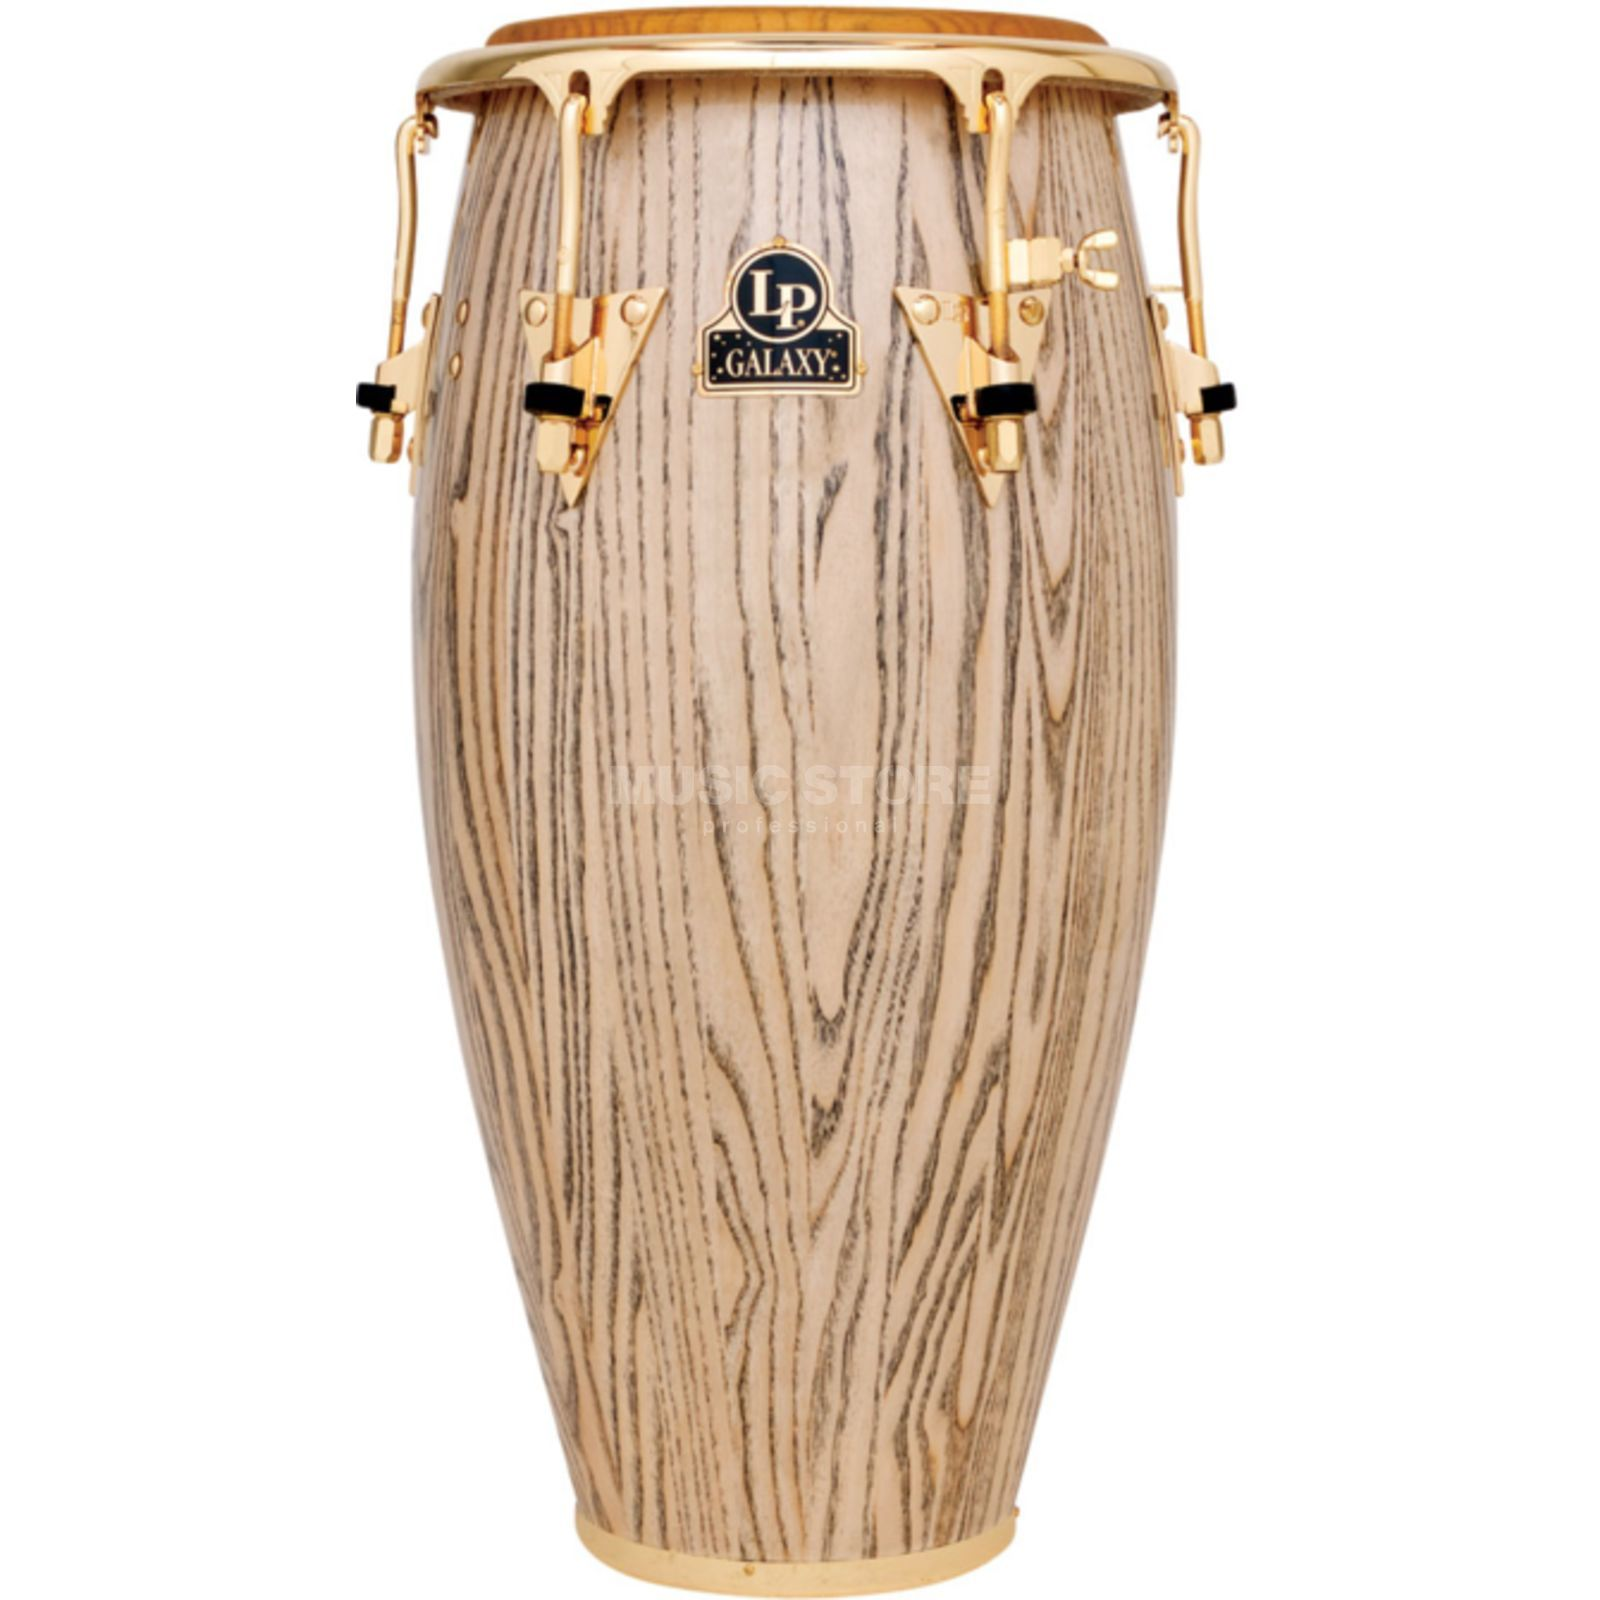 "Latin Percussion Galaxy Conga LP806Z-AW 11 3/4"" Conga,Natural,Giovanni Produktbild"